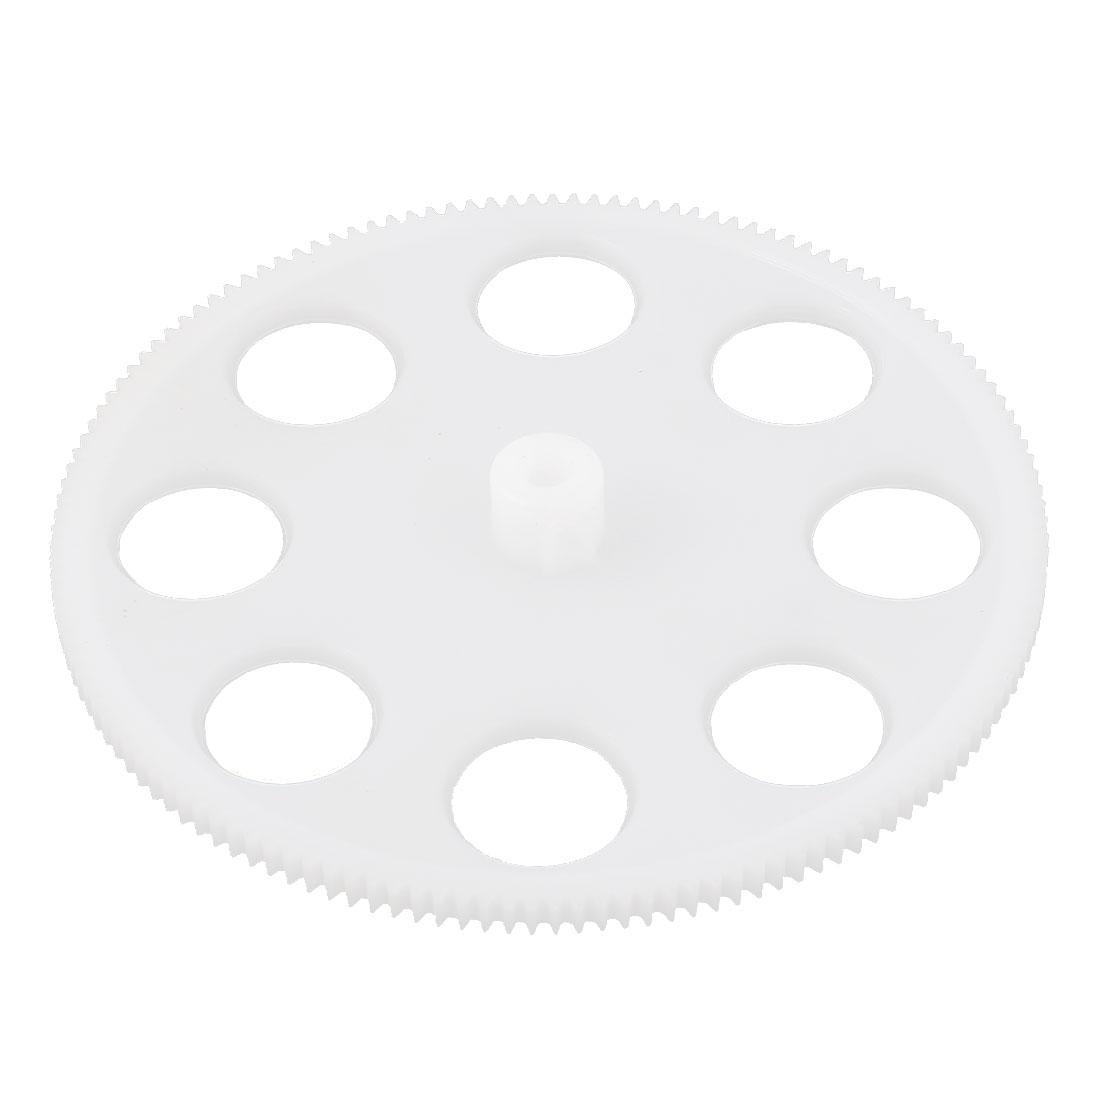 Plastic White Main Gear Spare Part for Double Horse 9104 RC Helicopter